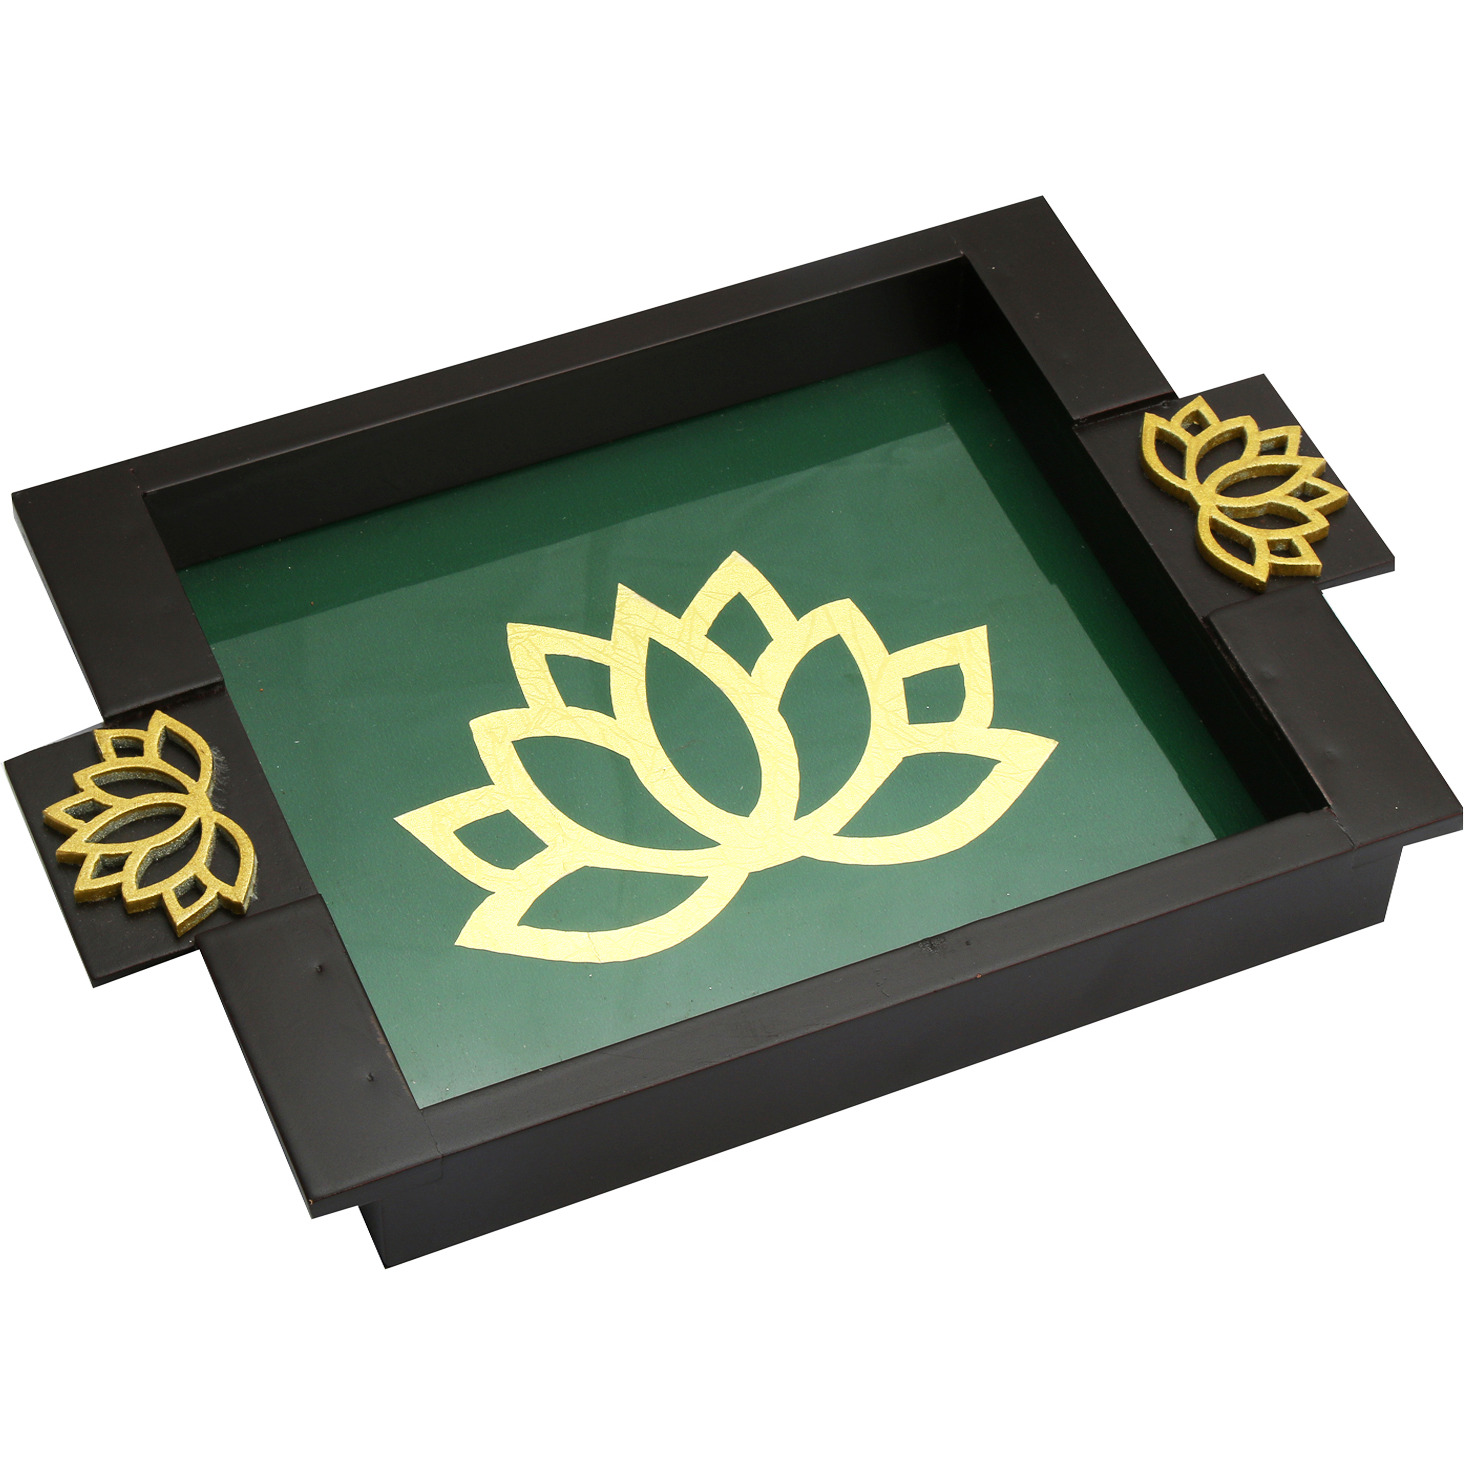 Decoration- Green Wooden Serving Tray